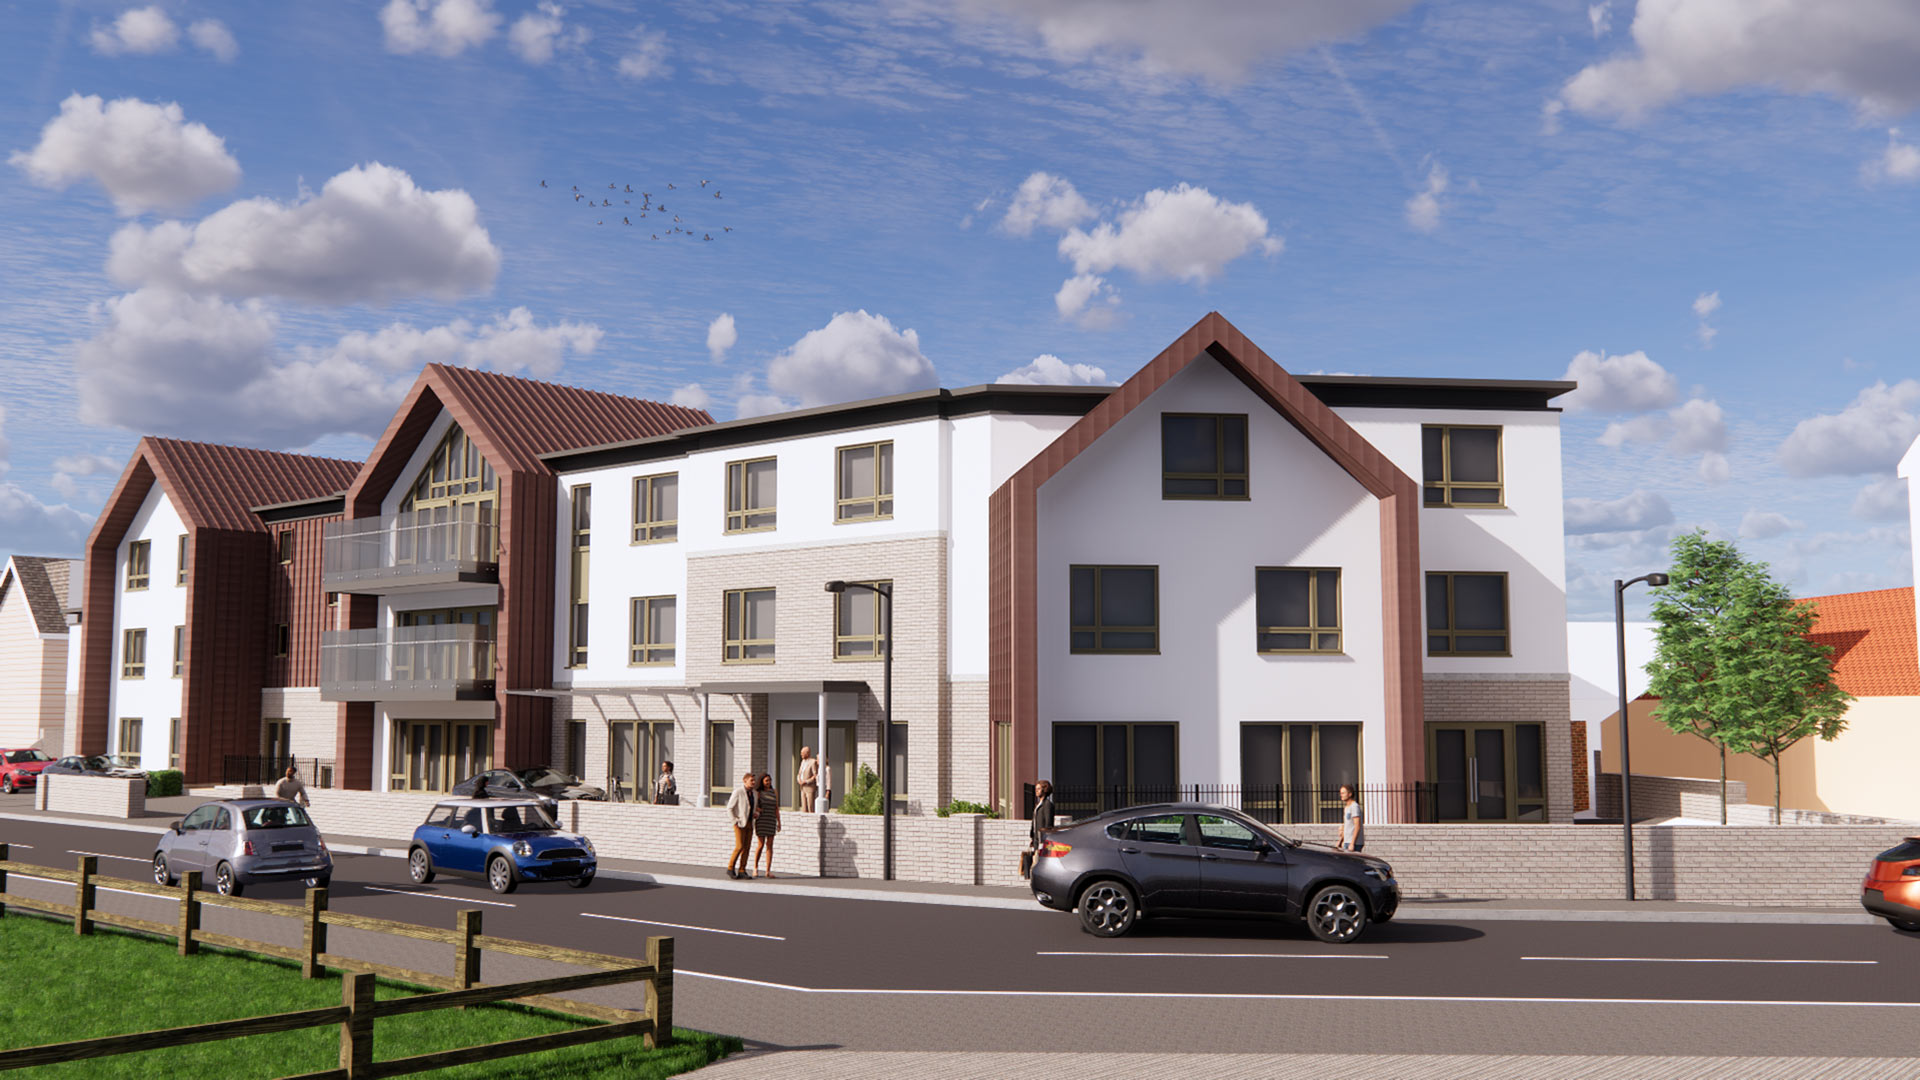 Carless + Adams Architects design care home in Lancing